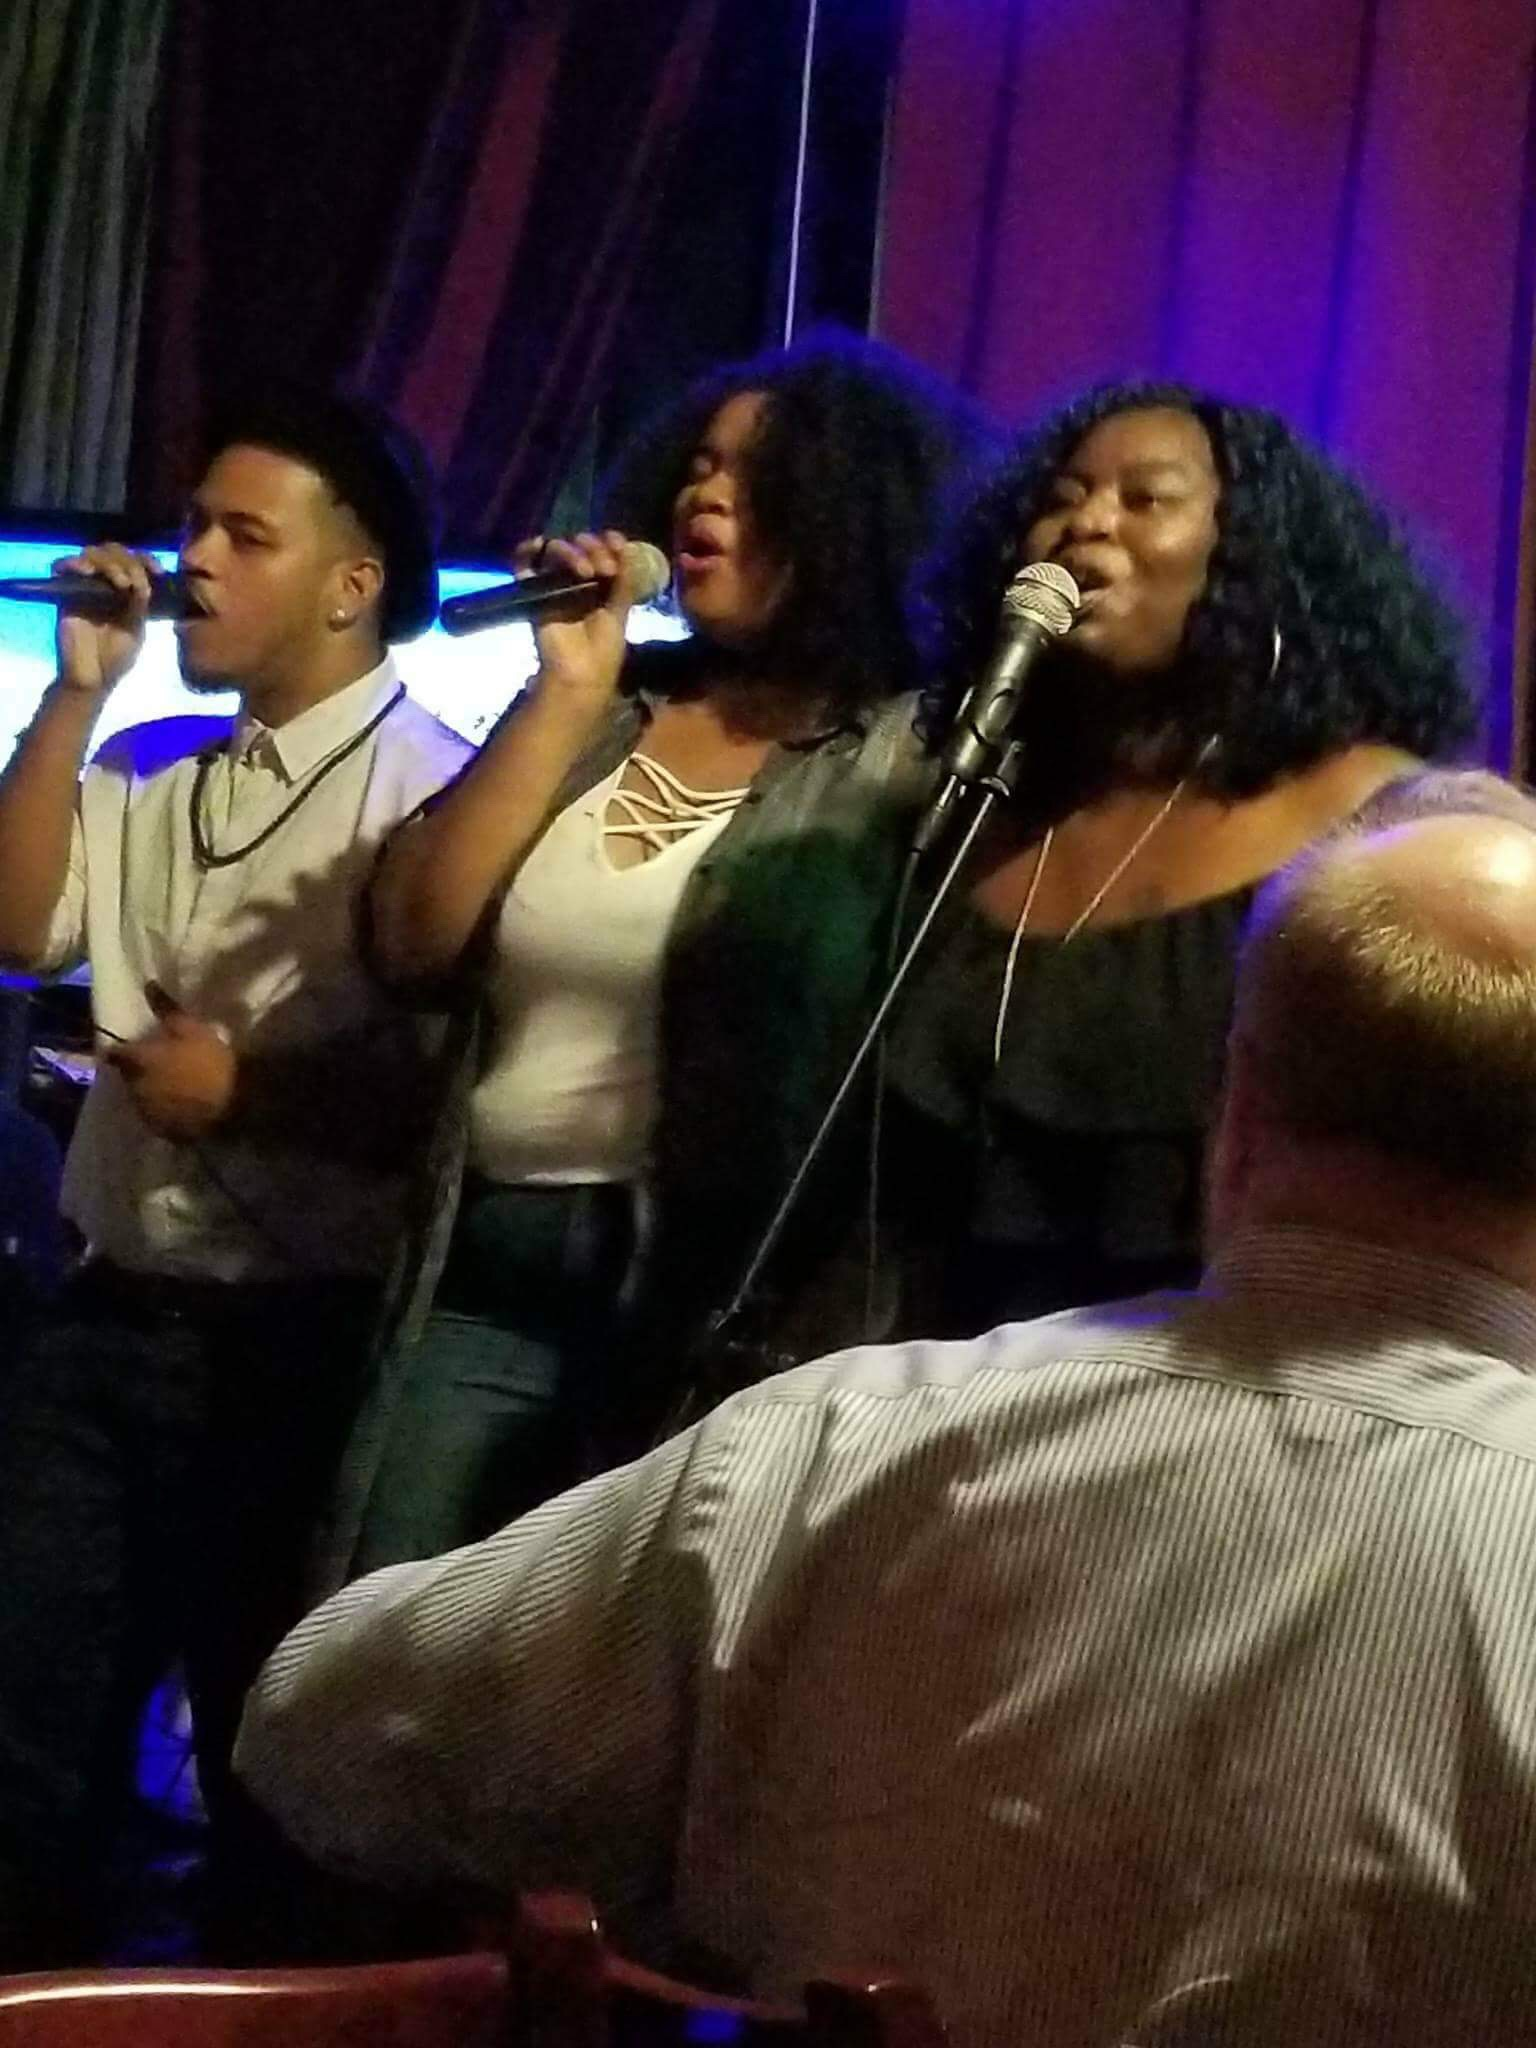 Lynne Summers (far right) performing at Nabe in Harlem, NY.